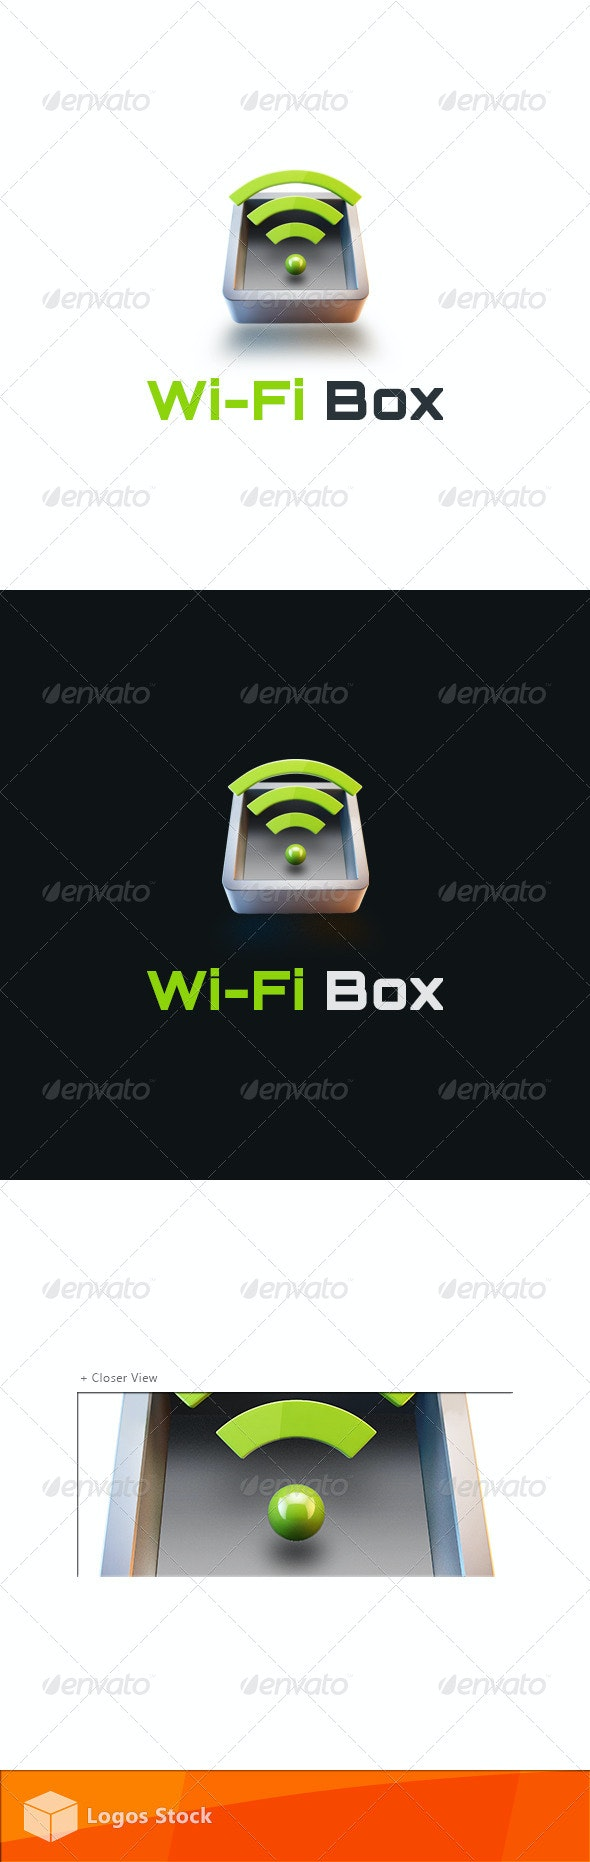 Technology Logo - WiFi Box - 3d Abstract